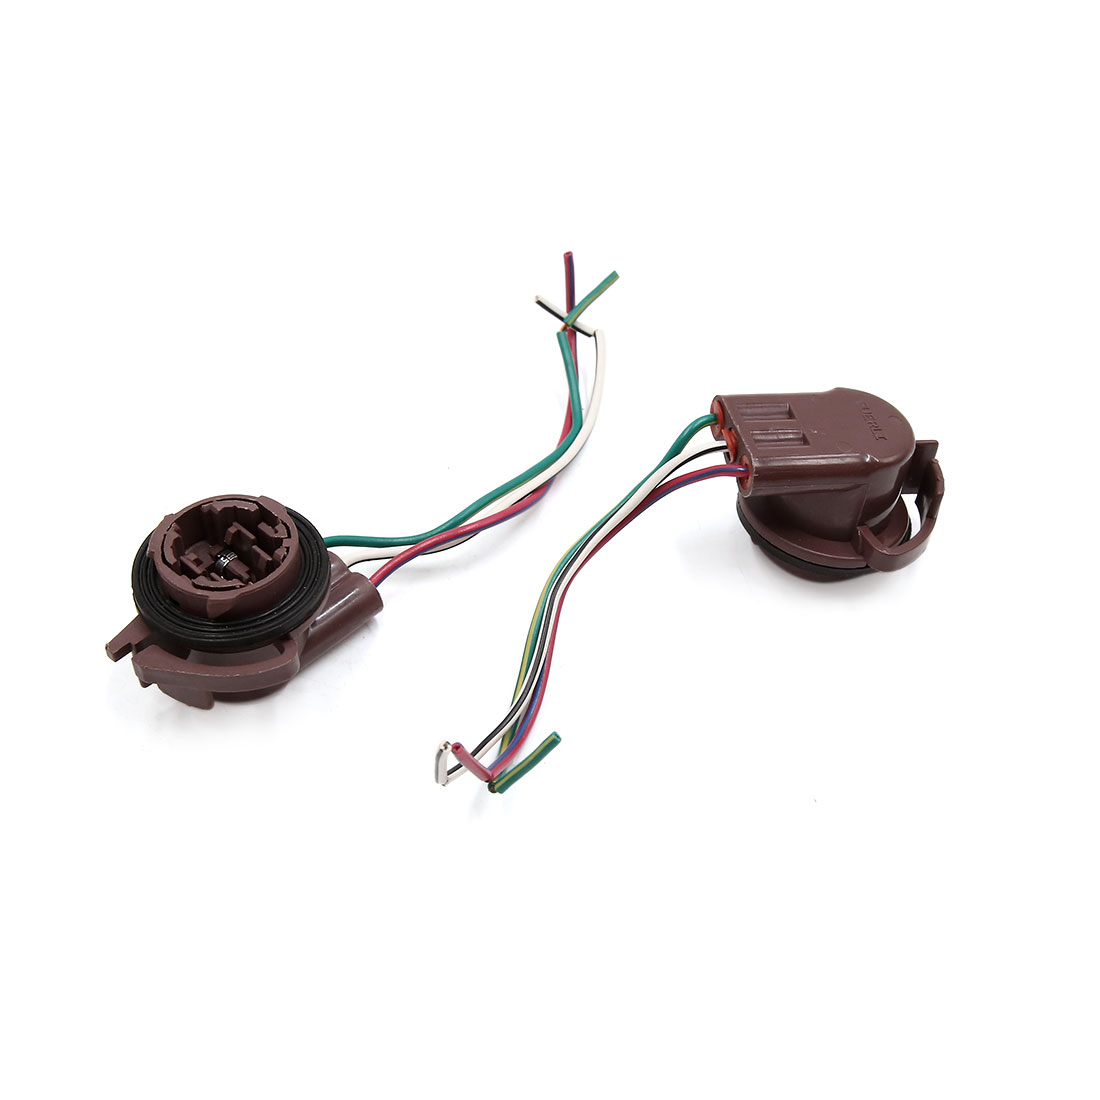 hight resolution of 5pcs 3157 3 wires car turn signal light lamp bulb wired harness socket connector